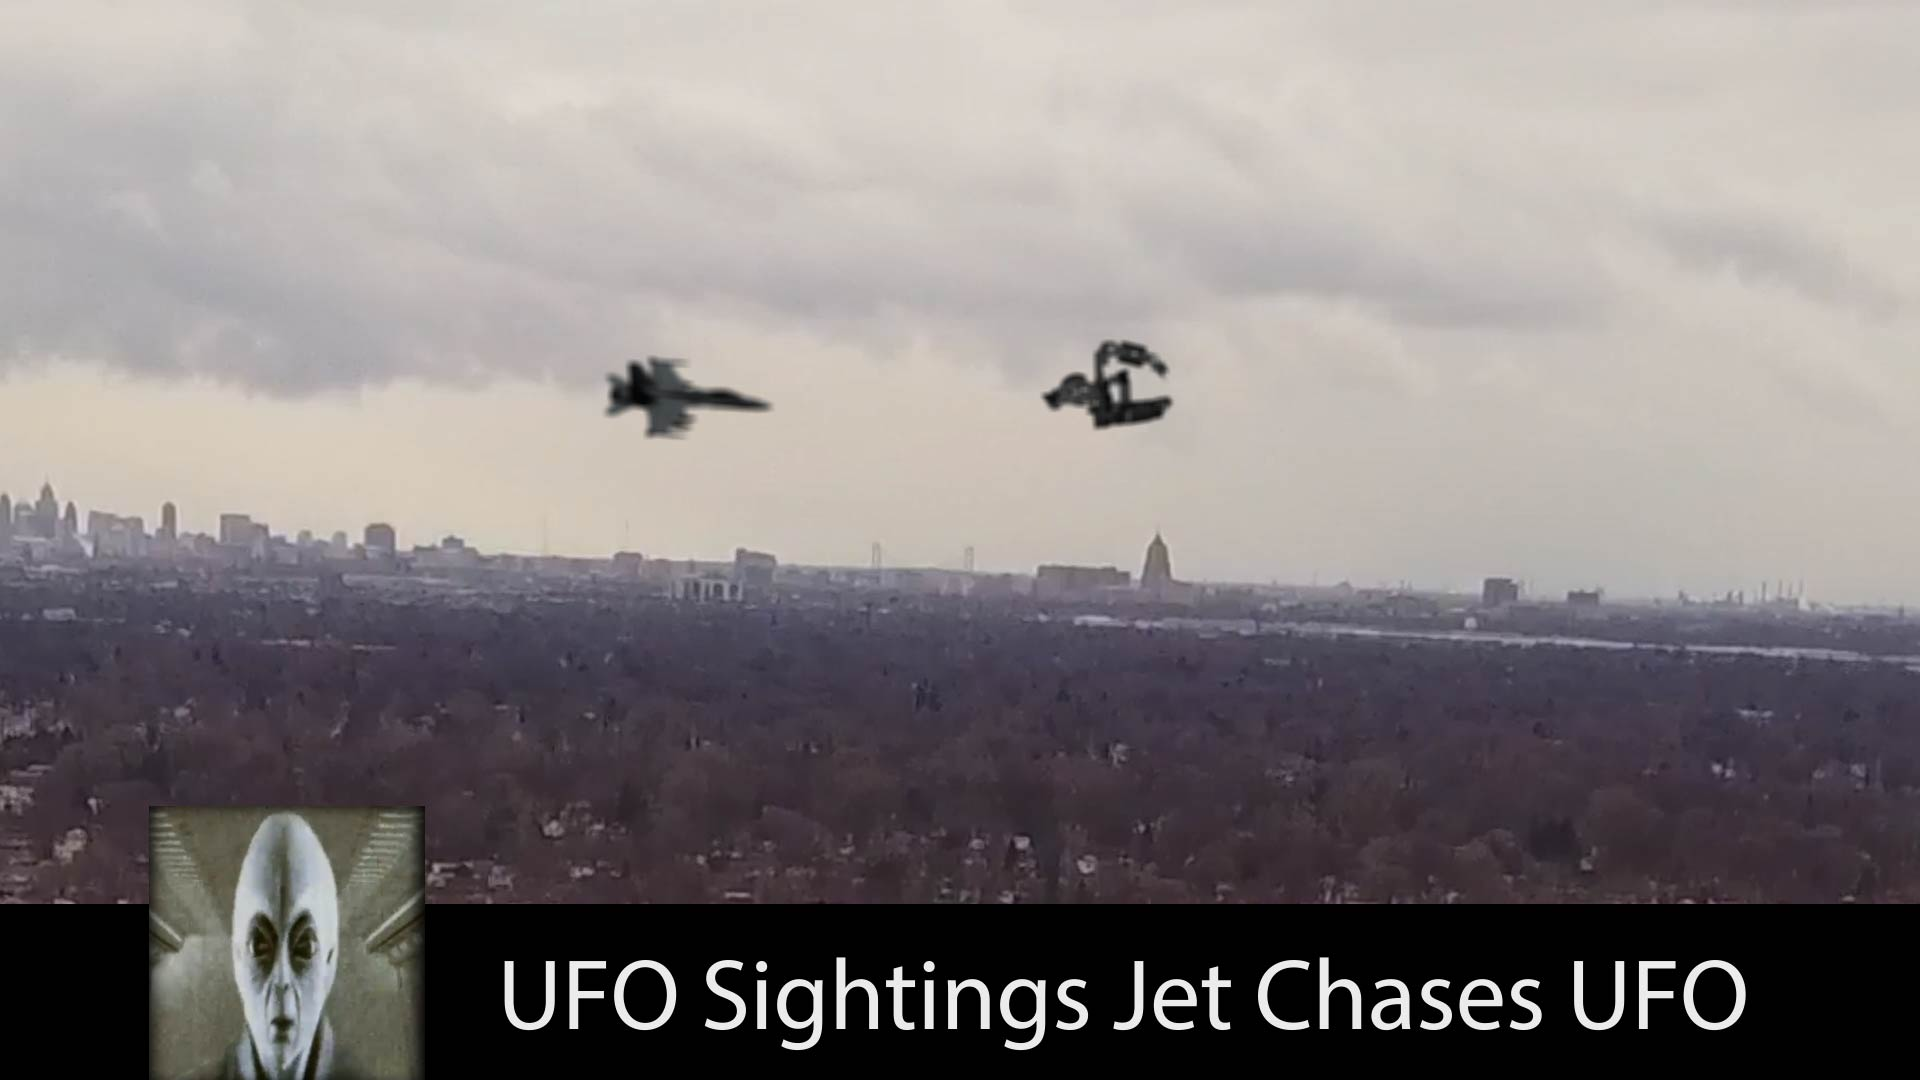 UFO Sightings Jet Chases UFO October 29th 2017